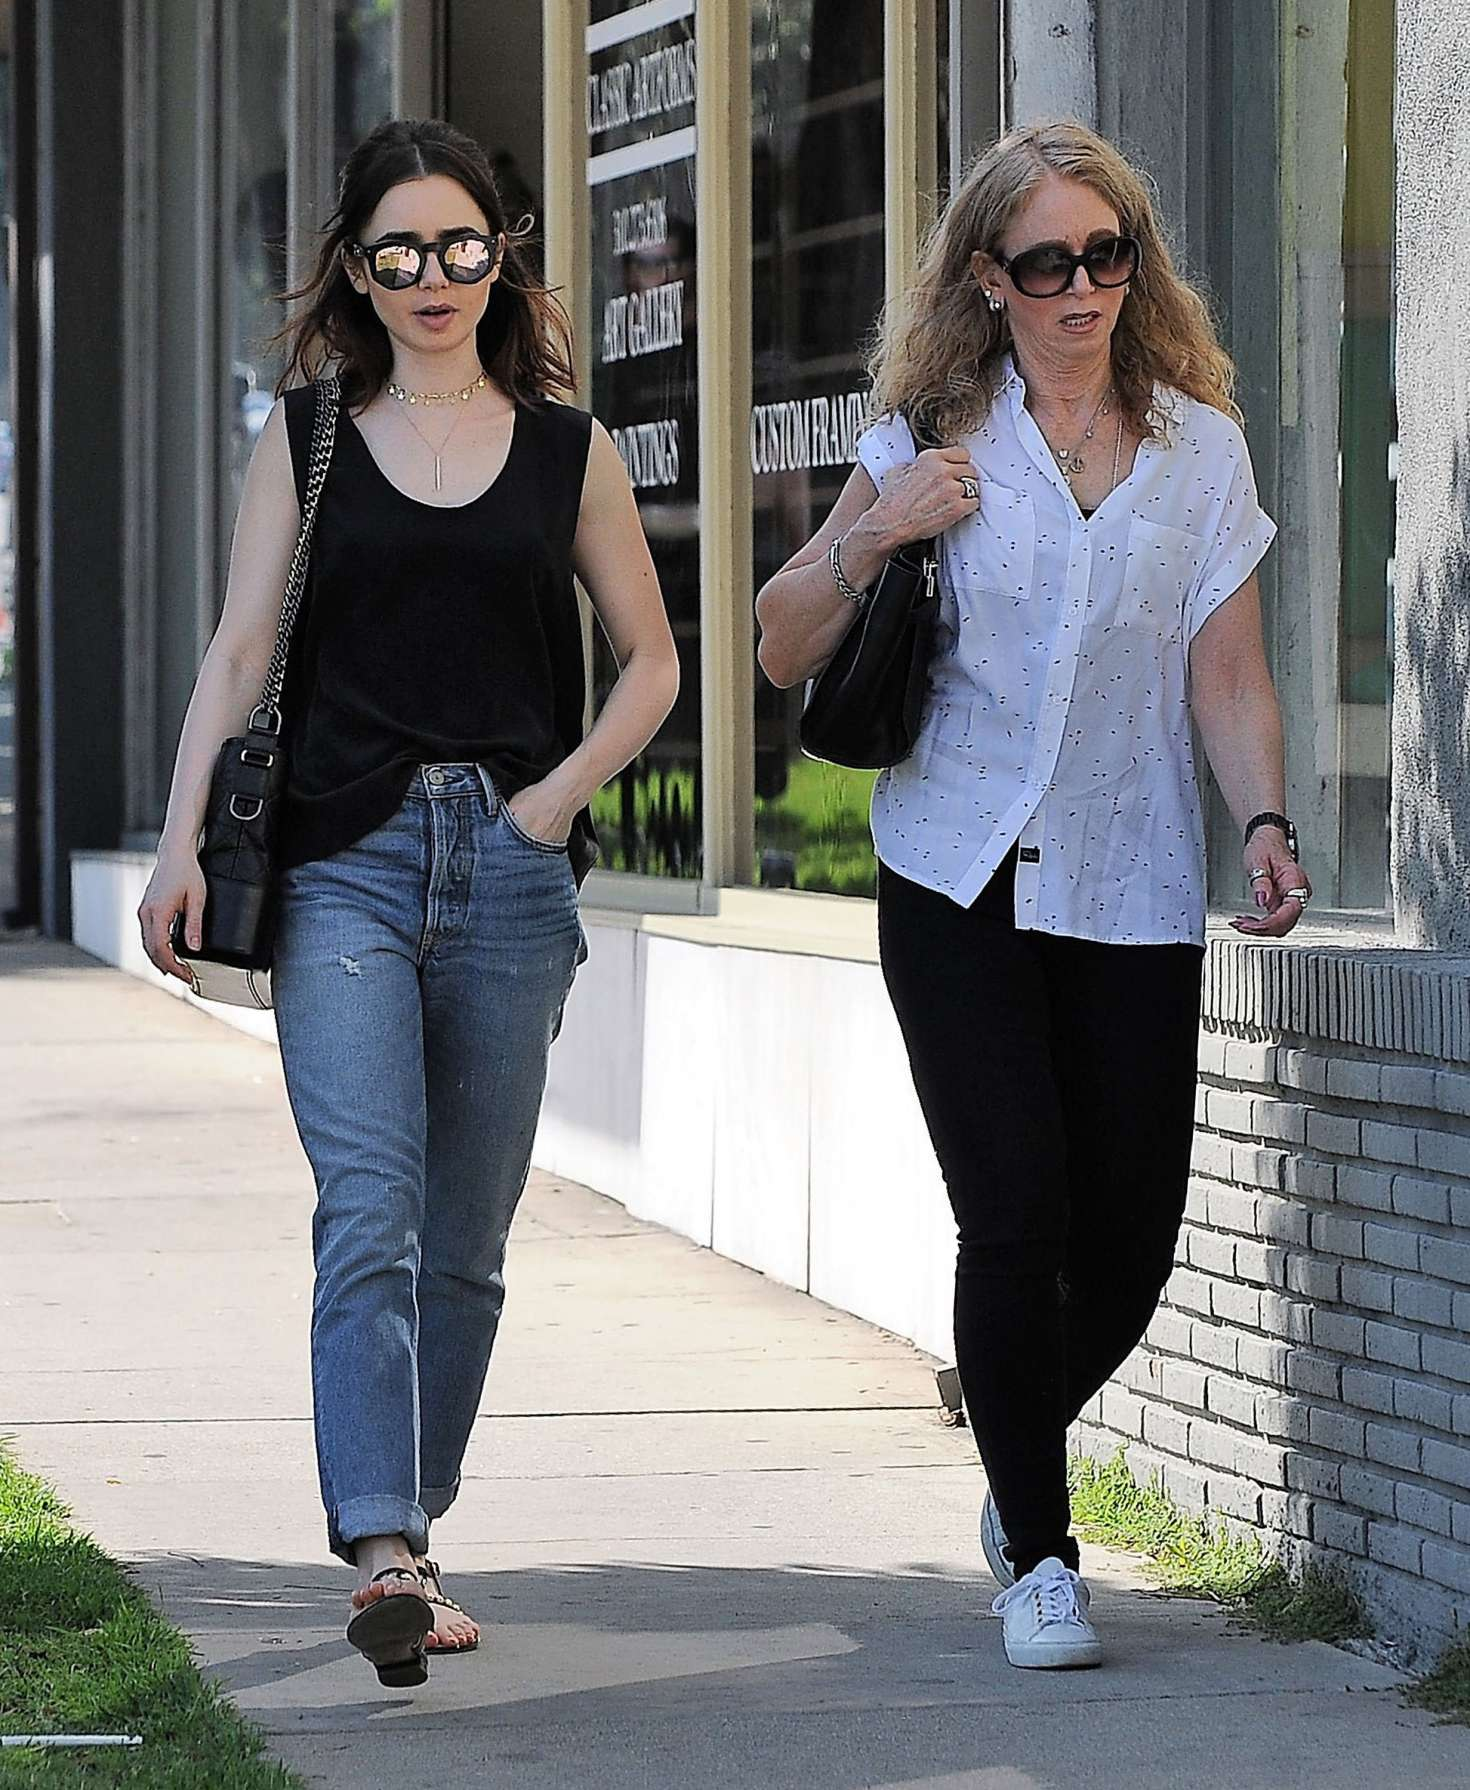 Lily Collins And Her Mother Jill Tavelman Out In West Hollywood 17 Gotceleb Complete jill tavelman 2017 biography. lily collins and her mother jill